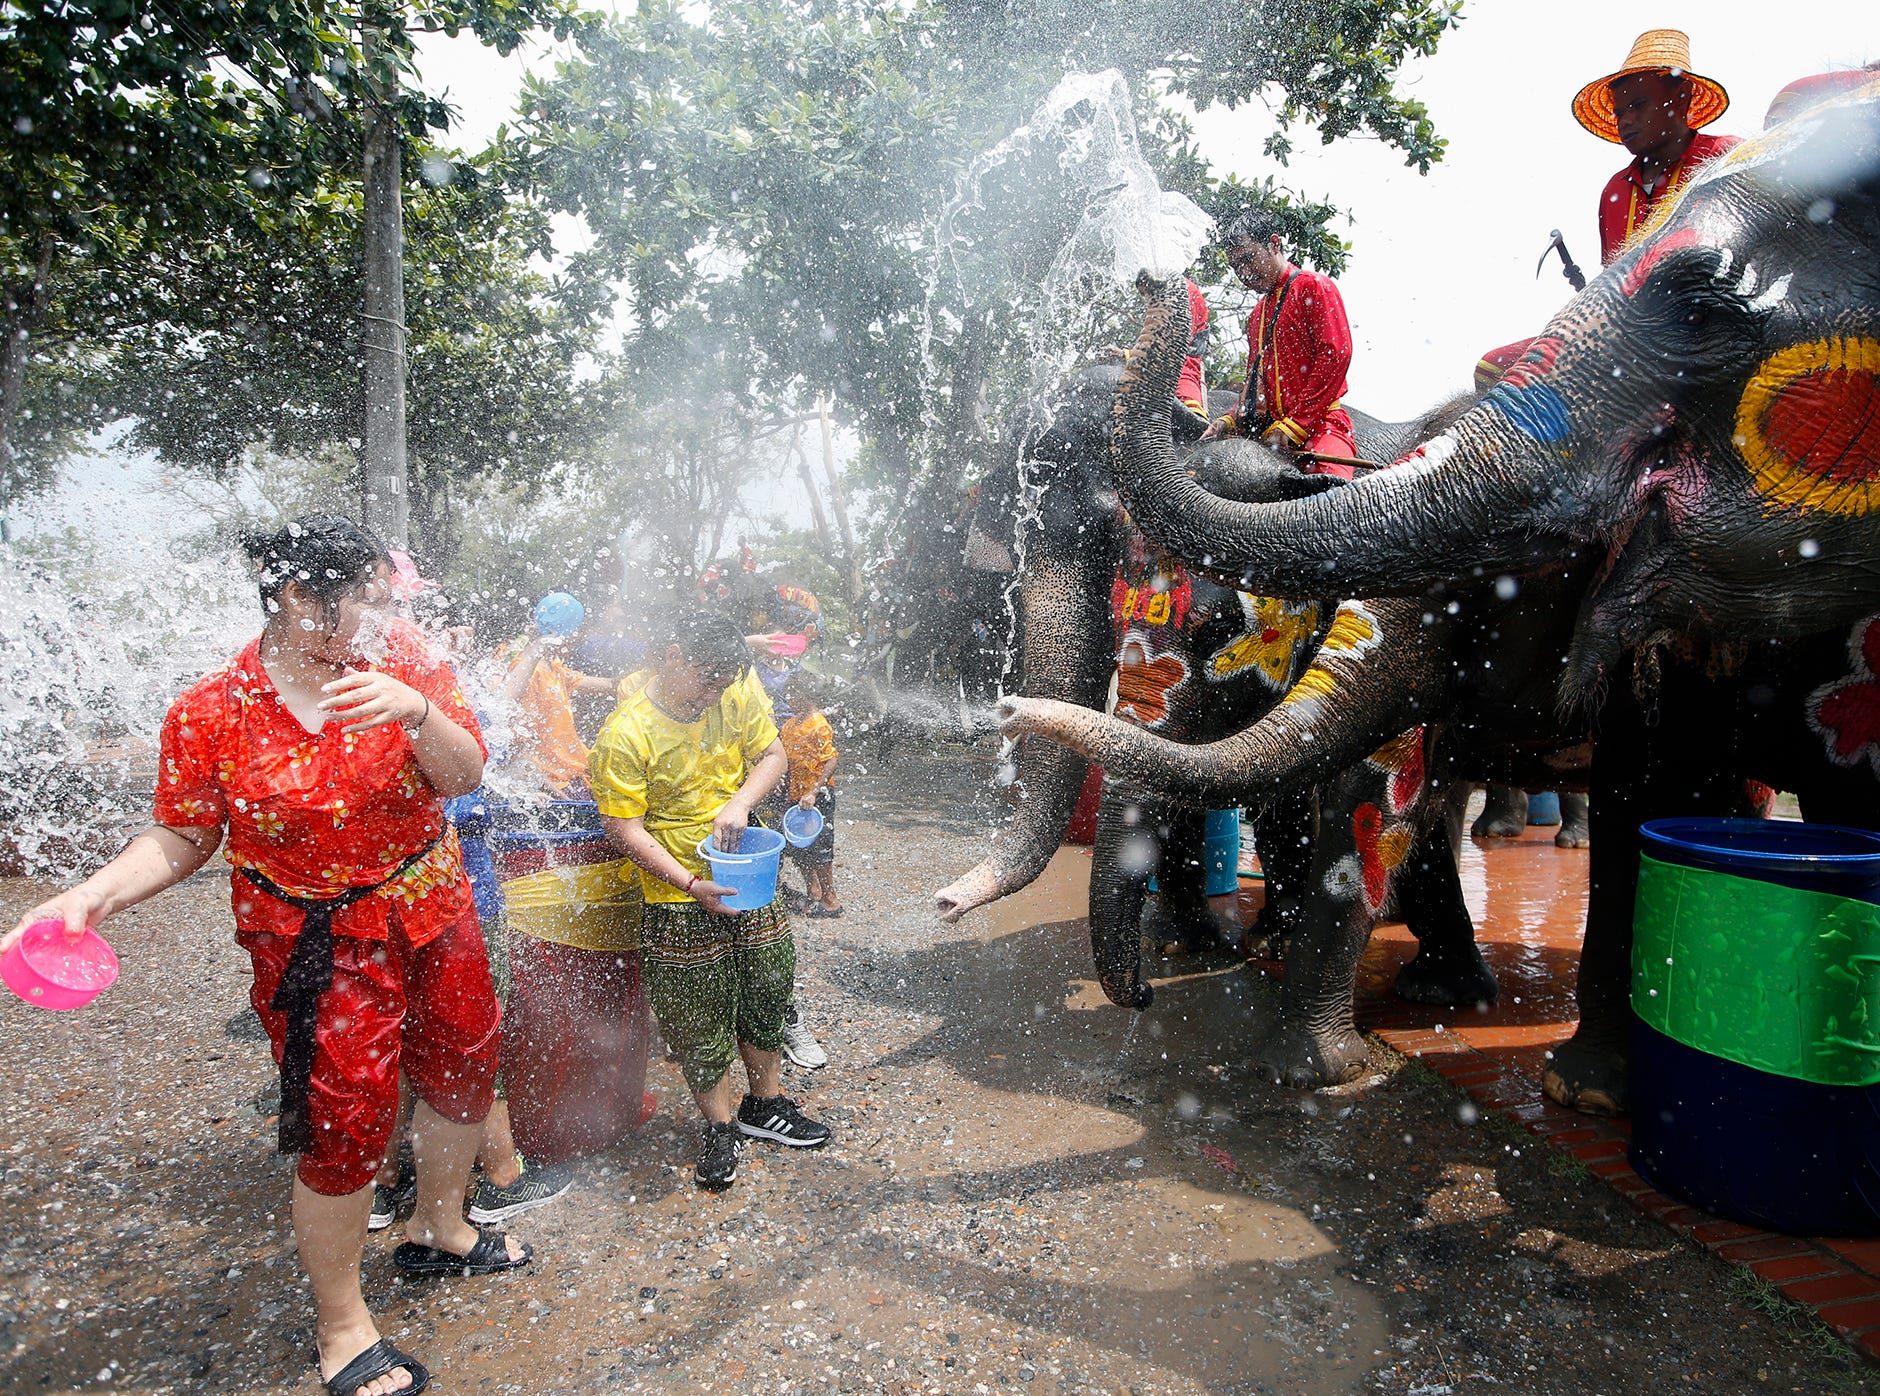 Thai elephant spread water during a preview of the Songkran Festival in the city of Ayutthaya, Thailand on April 11, 2019.